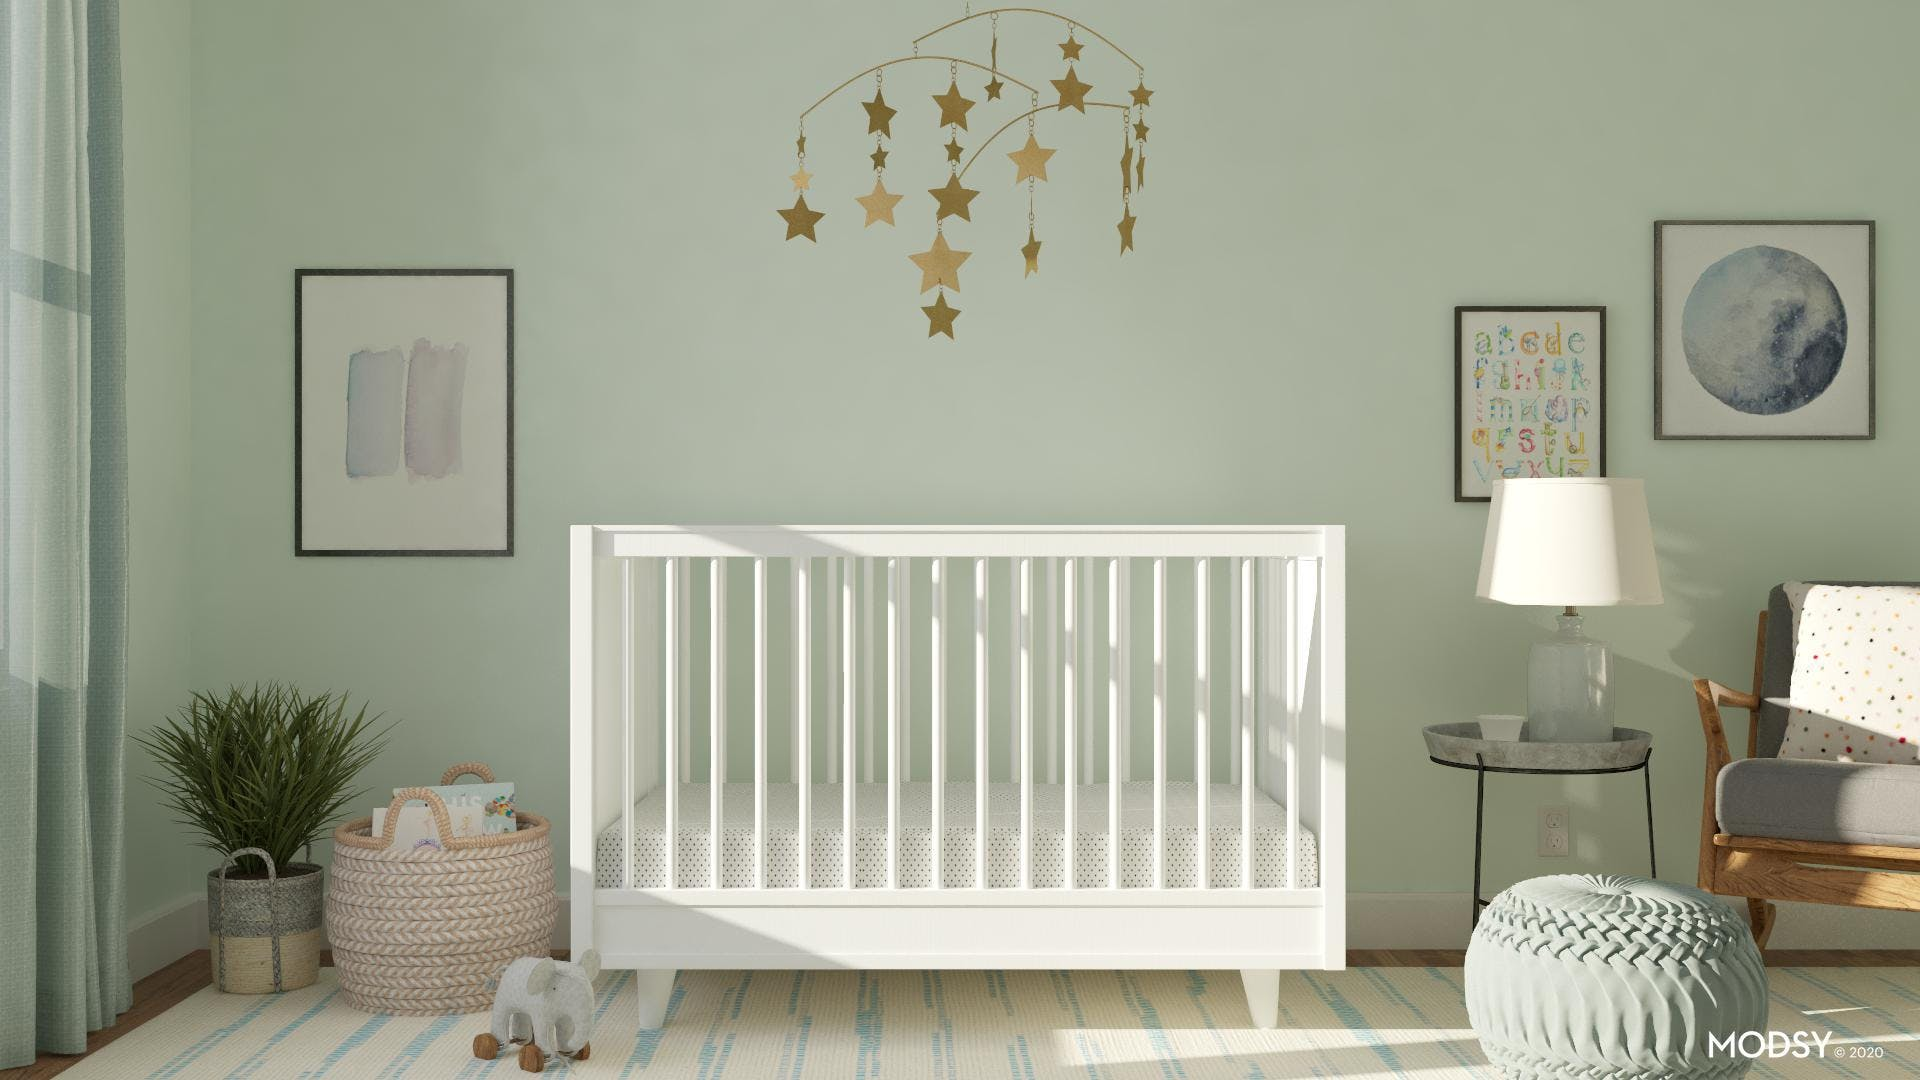 Cool and Calm in Minimalist Nursery